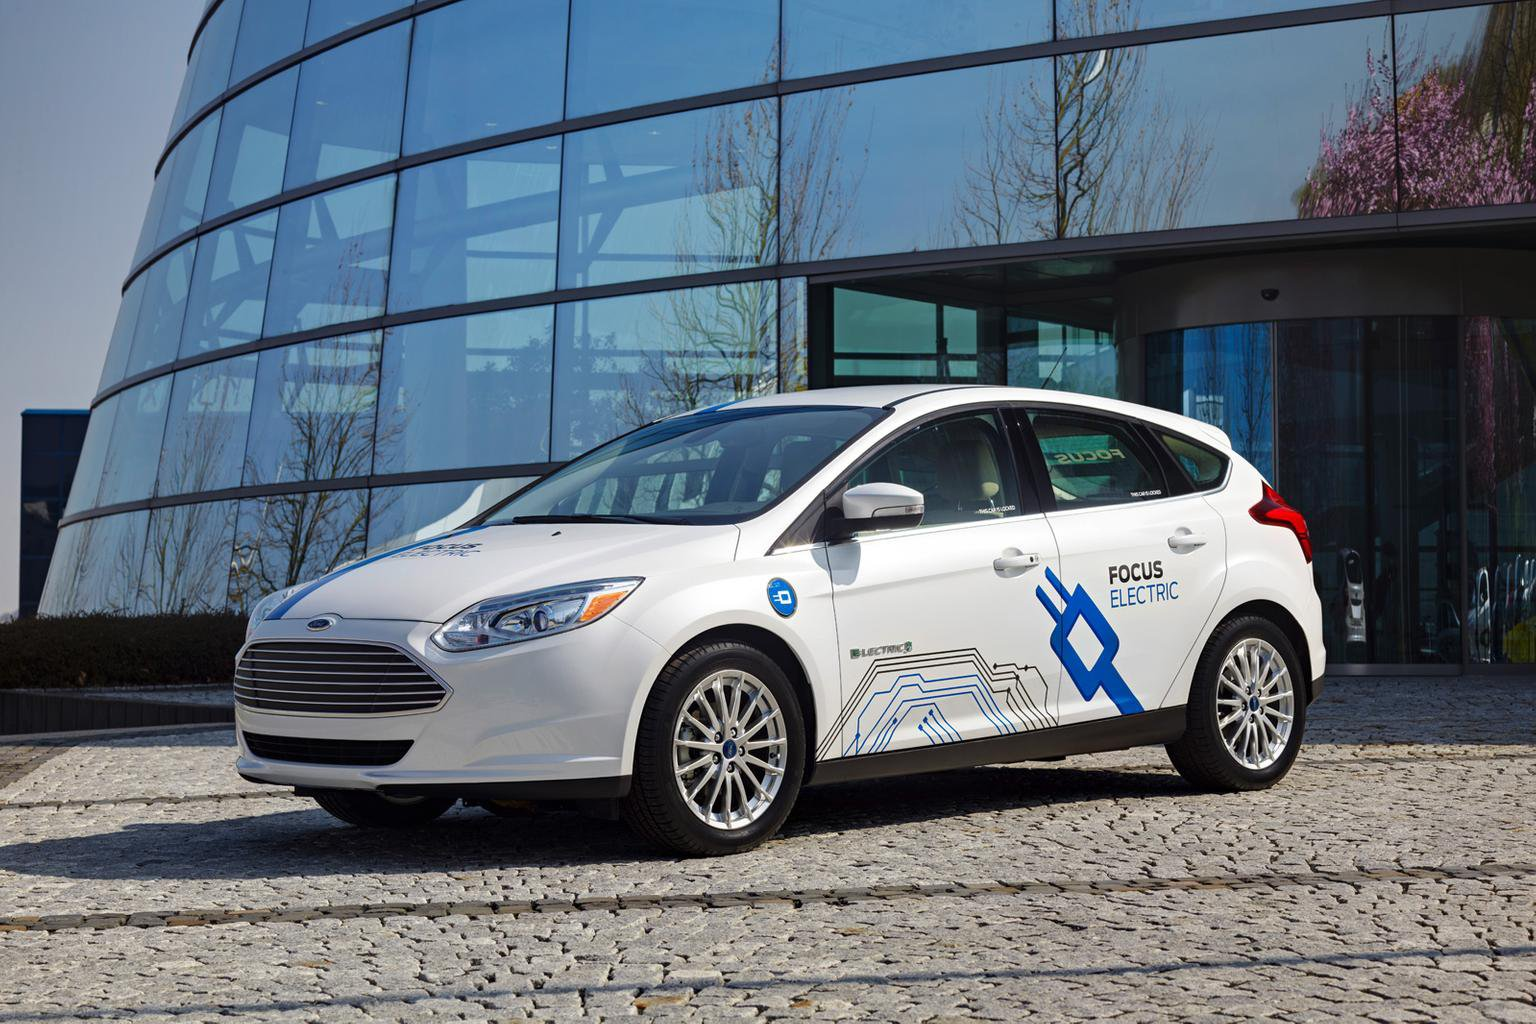 Ford Focus Electric goes on sale